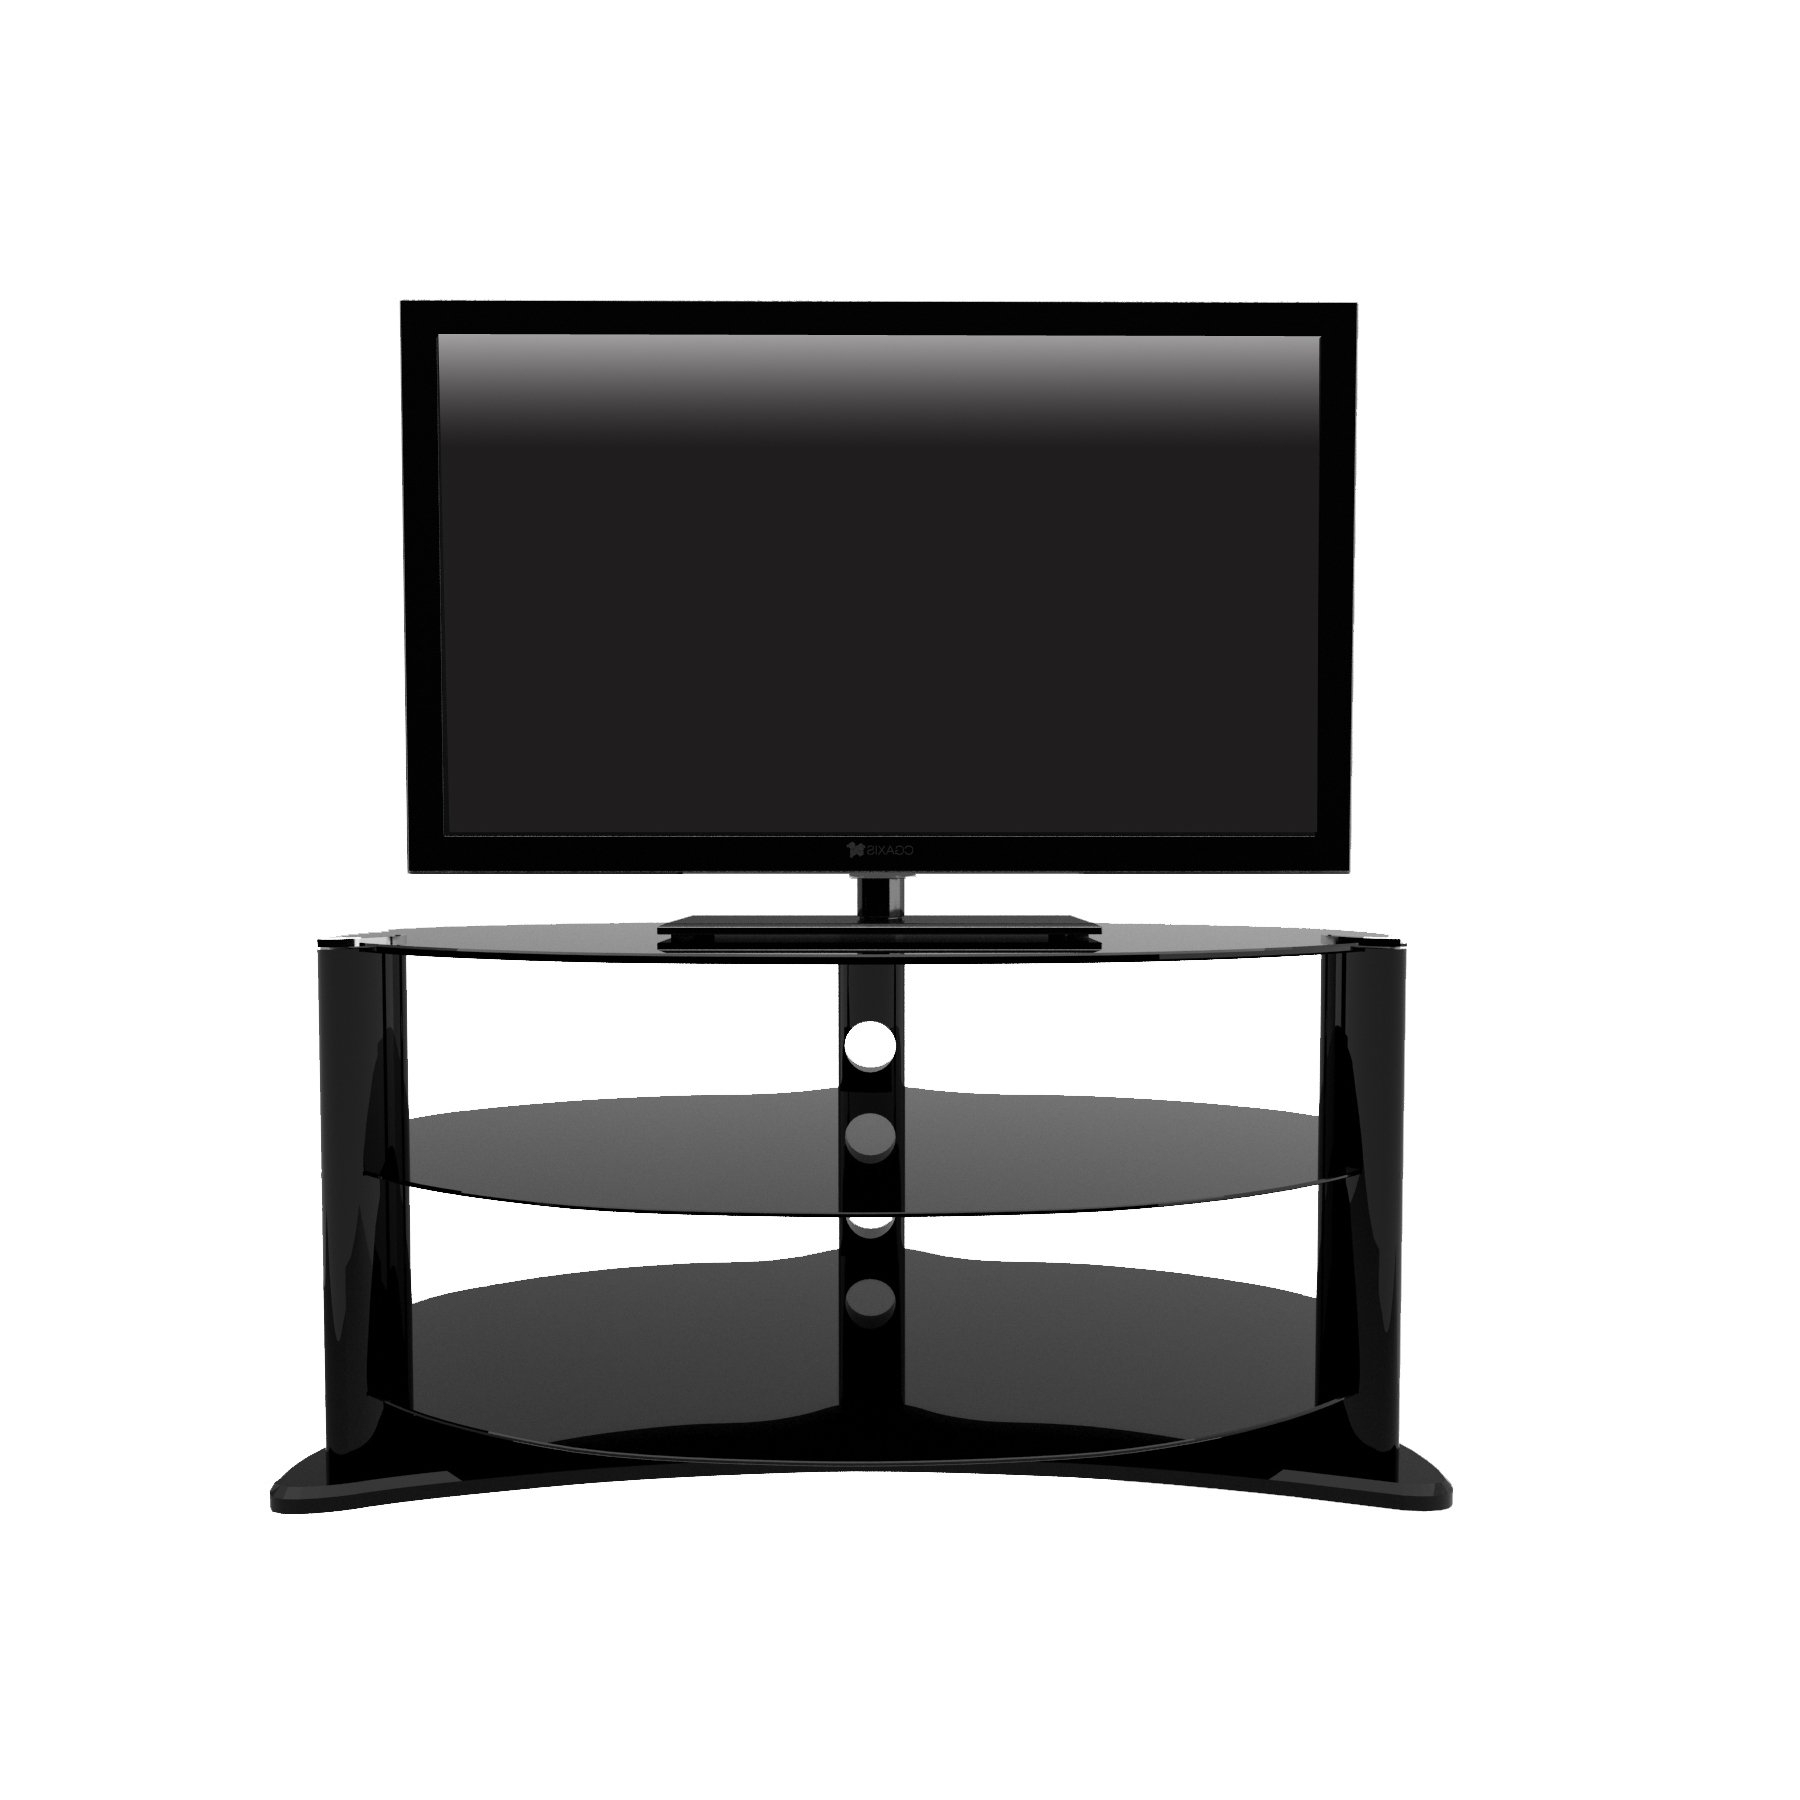 Shop Denver Oval 3 Tier Tv Stand Fits Tvs Up To 37 Inches – Free Within Widely Used Denver Tv Stands (Gallery 9 of 20)